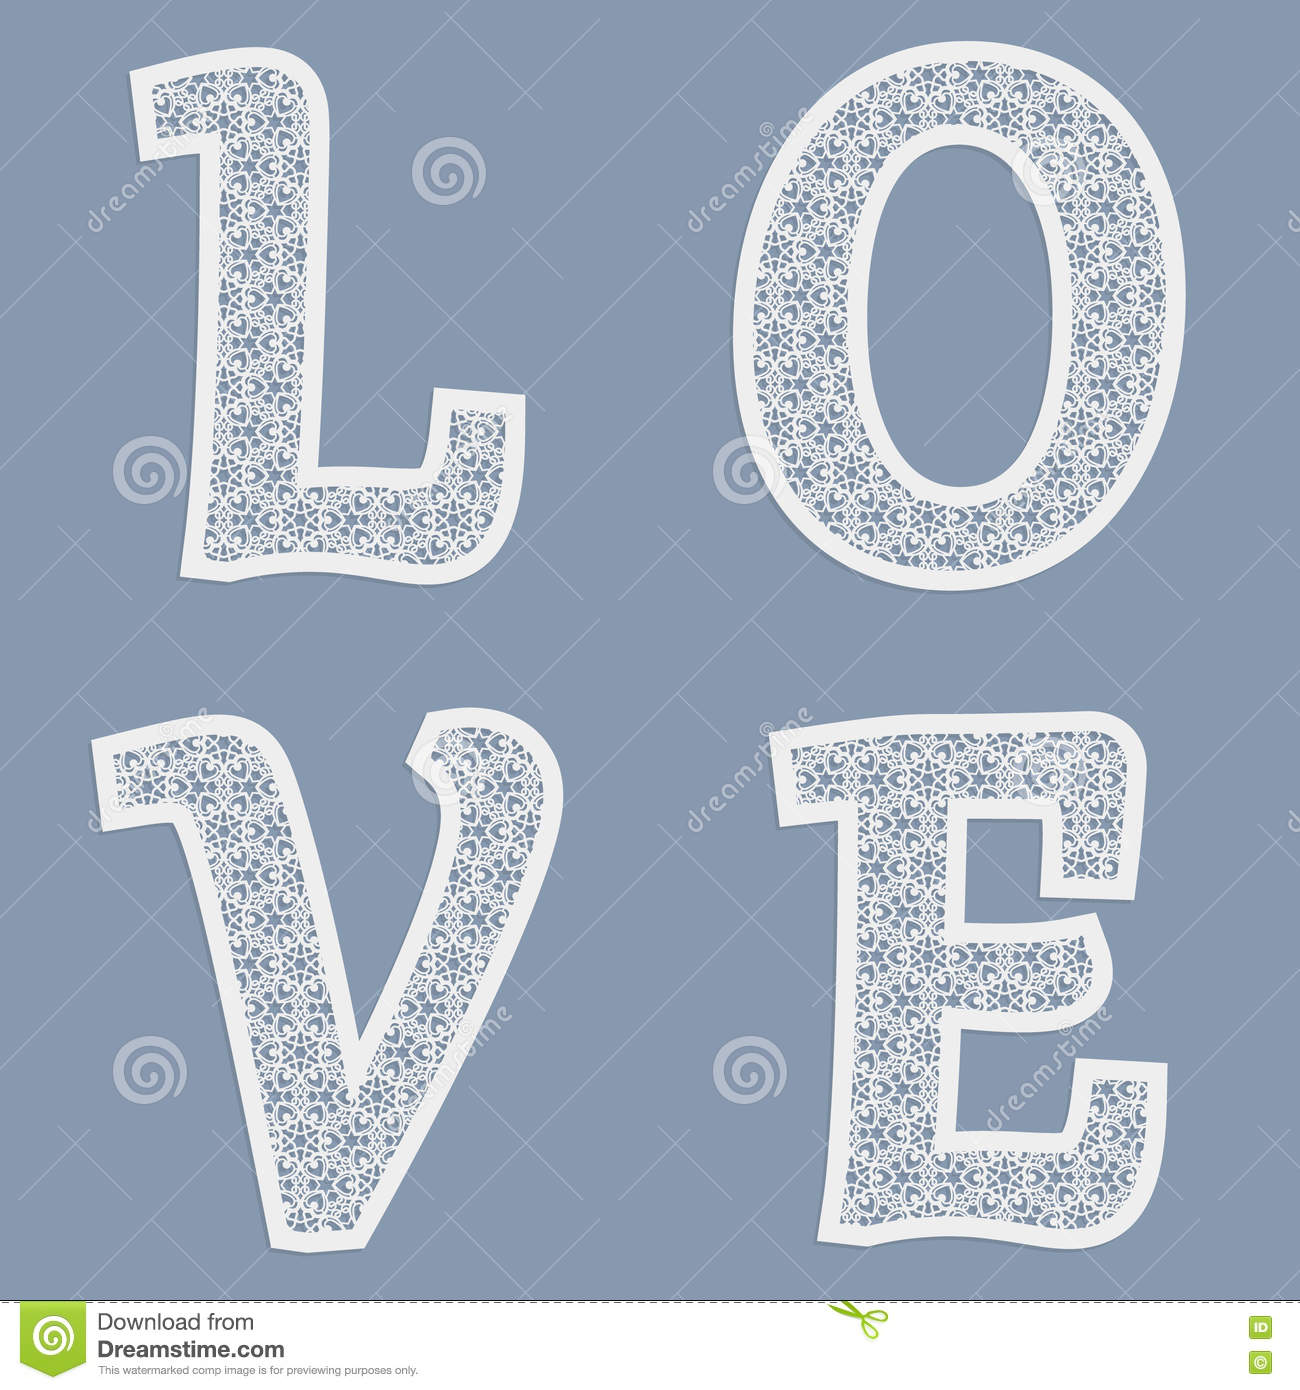 templates for cutting out letters of the word love may be used for